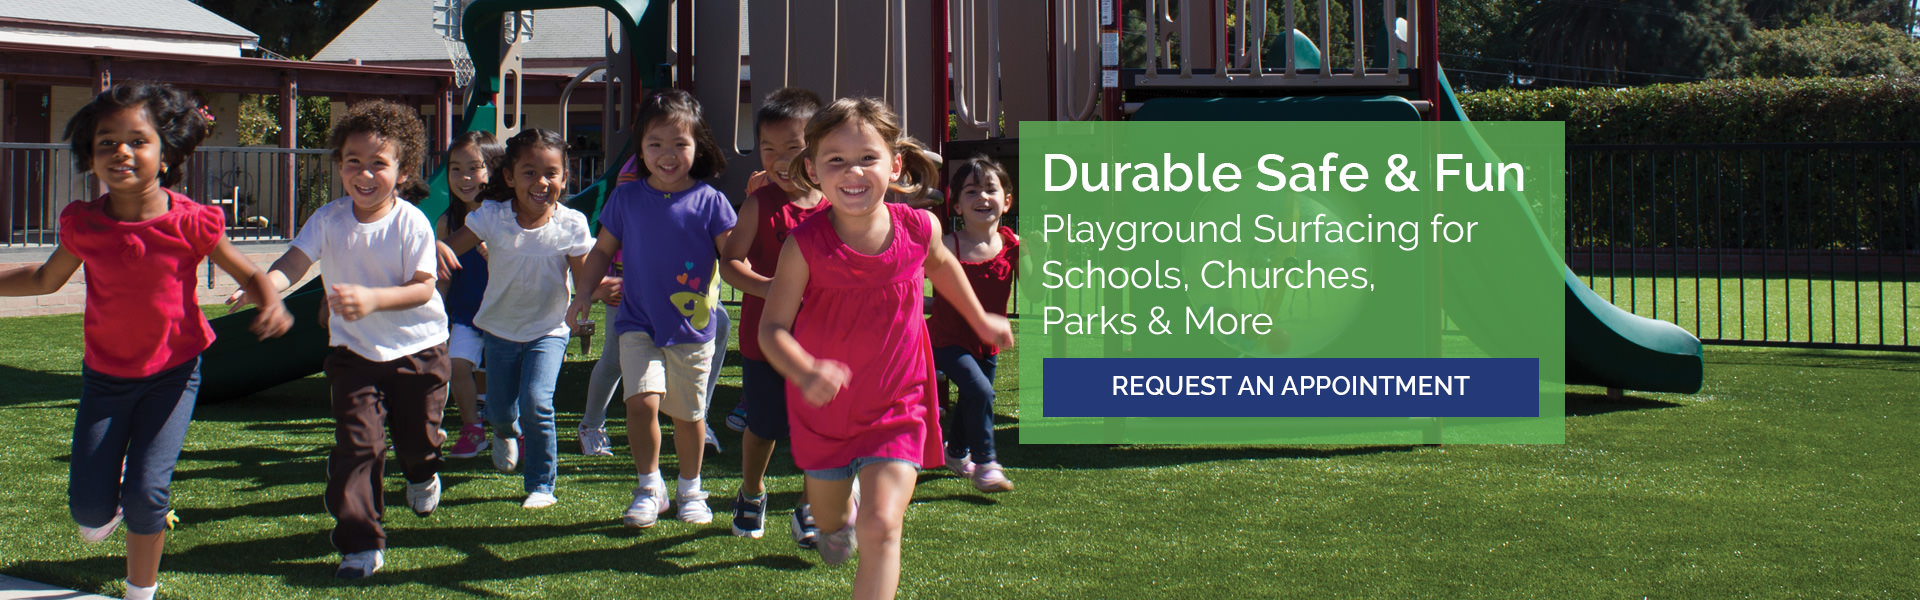 Durable Safe & Fun playground surfacing